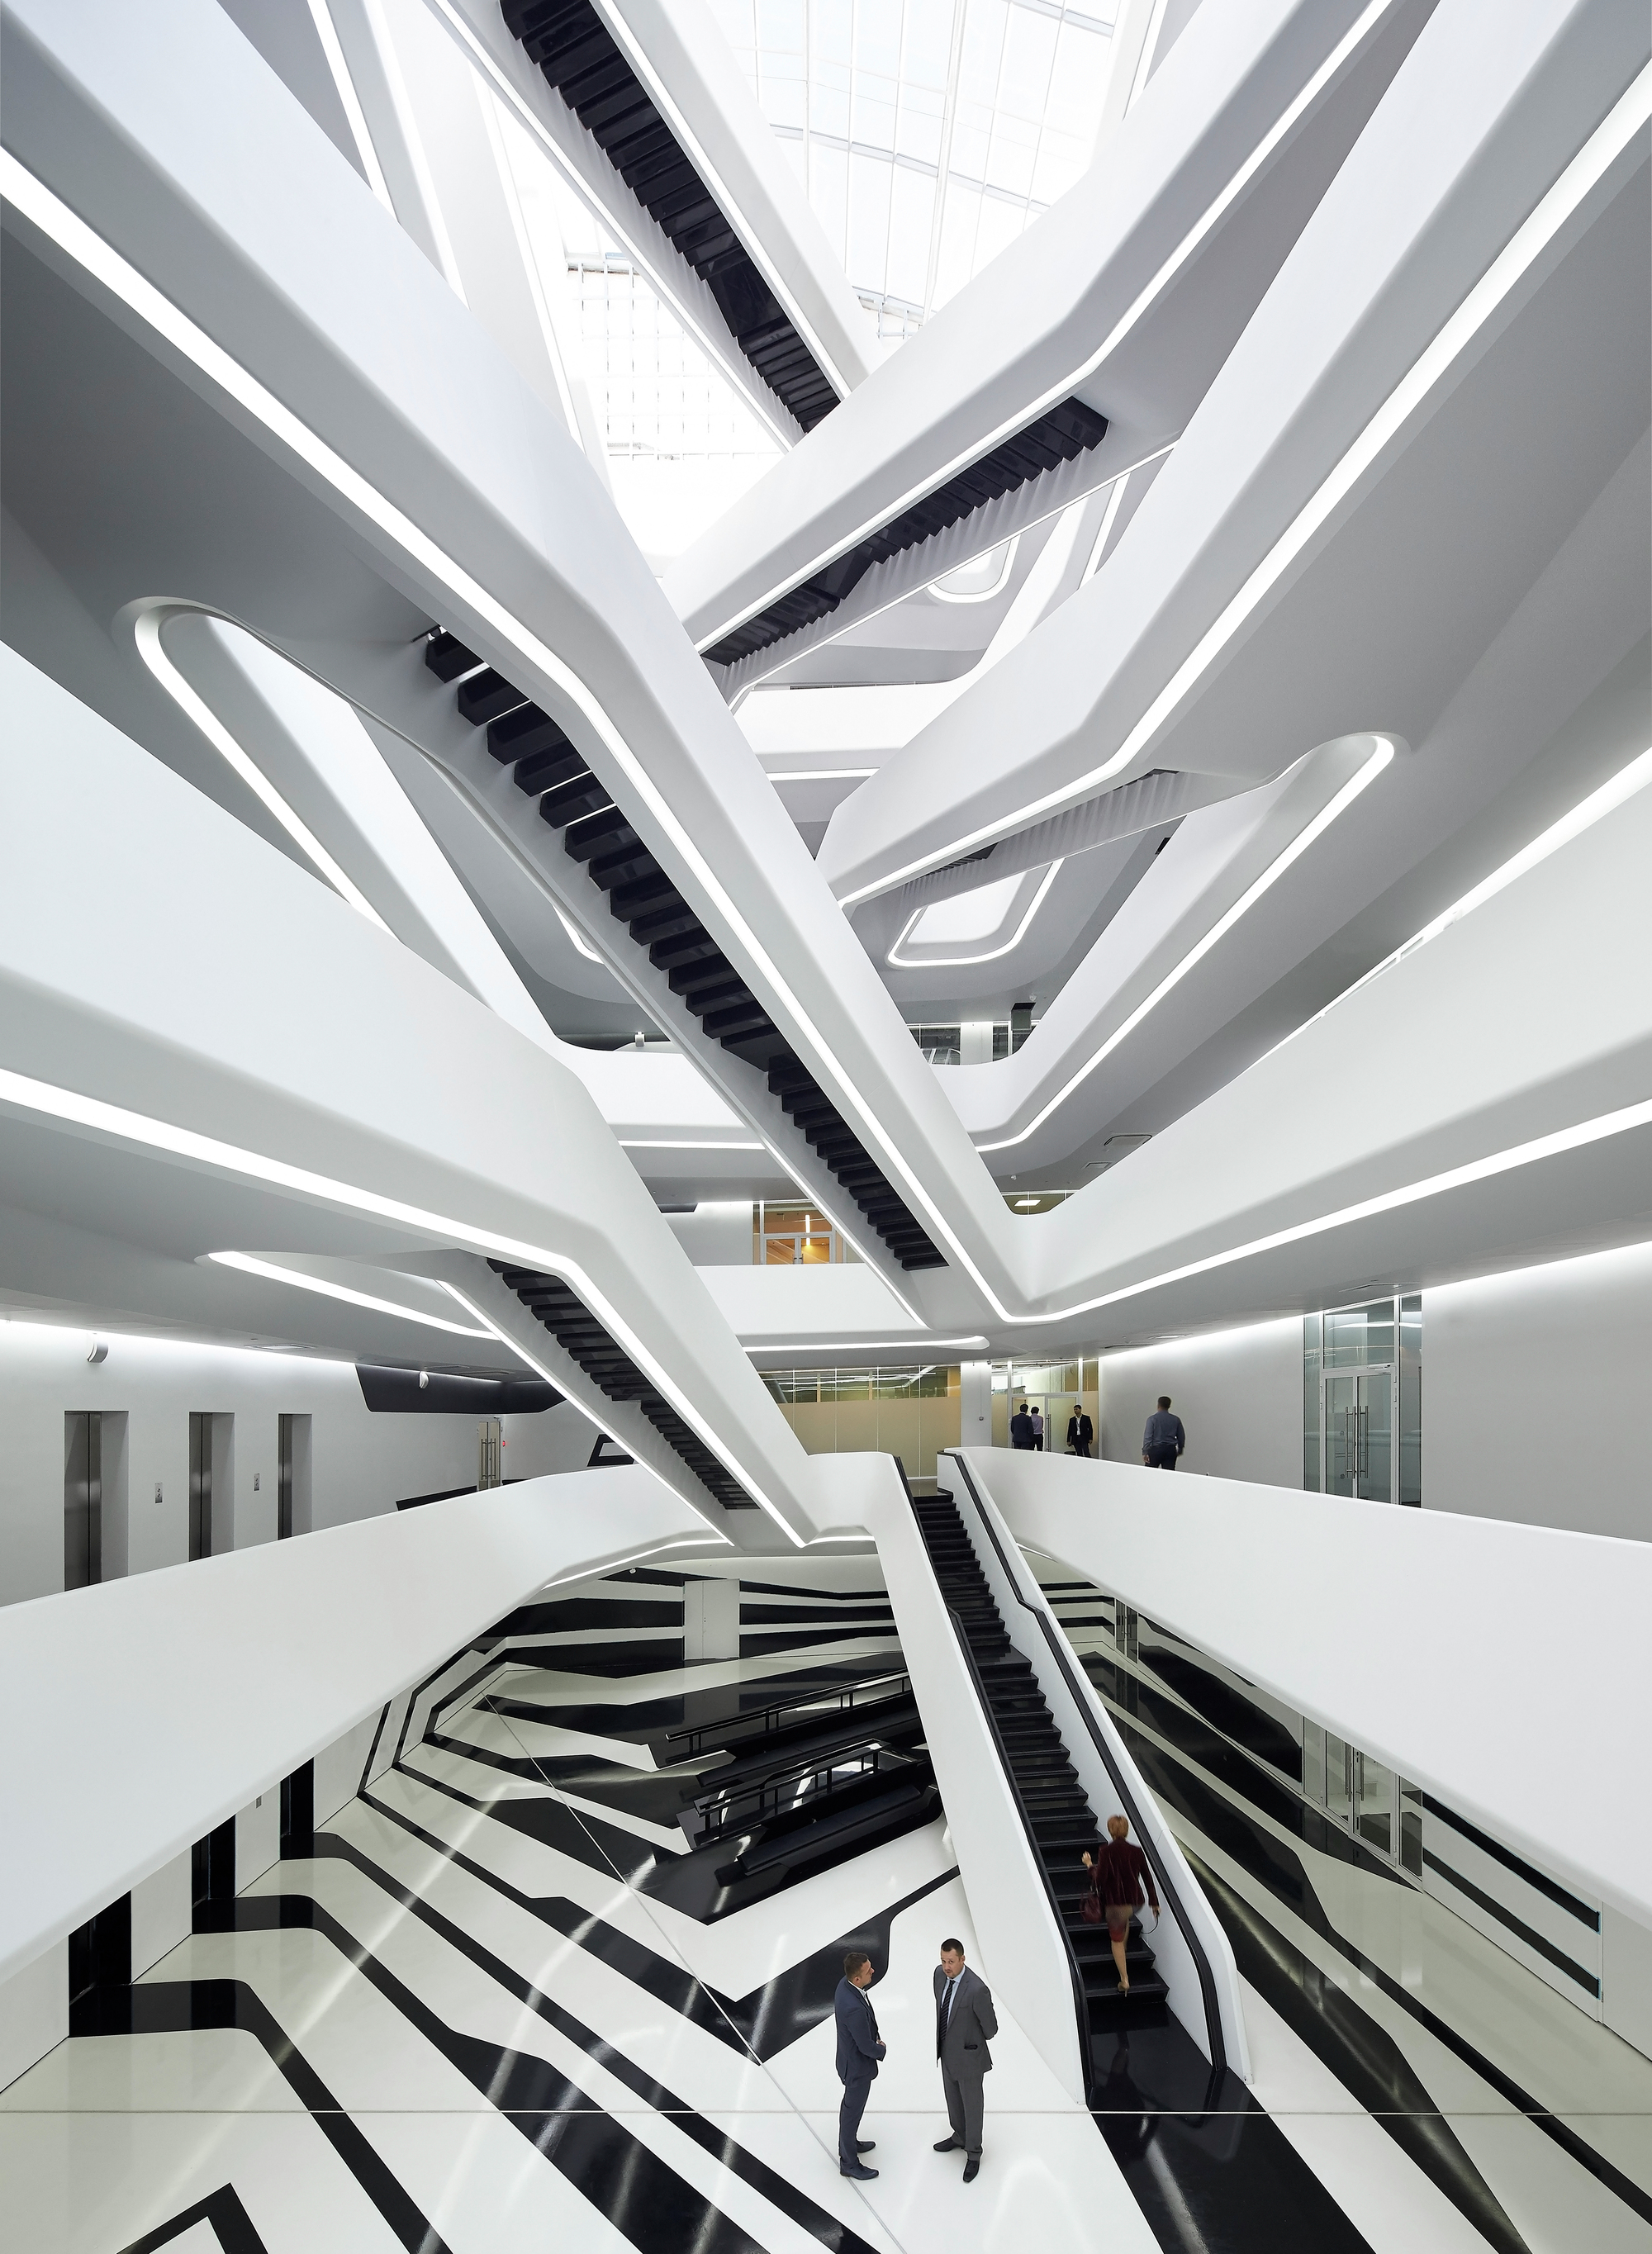 Dominion office building zaha hadid architects archdaily for Architecture zaha hadid